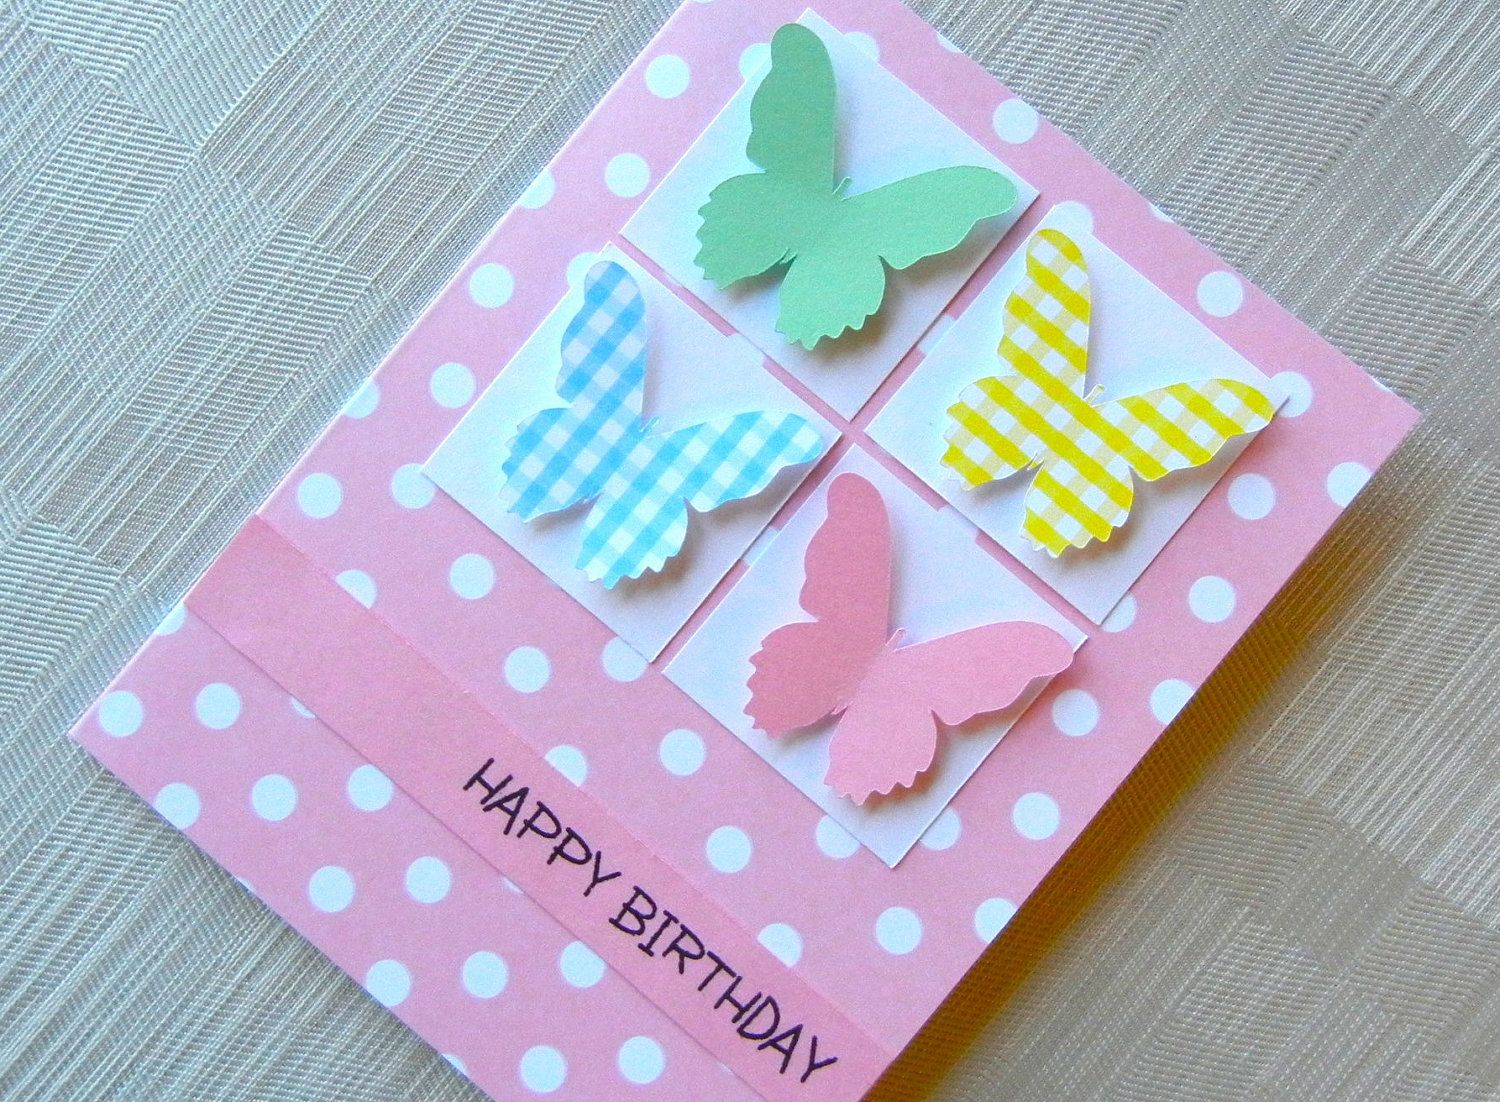 Pink hand made cards pinterest birthday card happy birthday kids birthday card happy birthday kids birthday card handmade birthday card for girl butterfly polka dots pink send happy birthday m4hsunfo